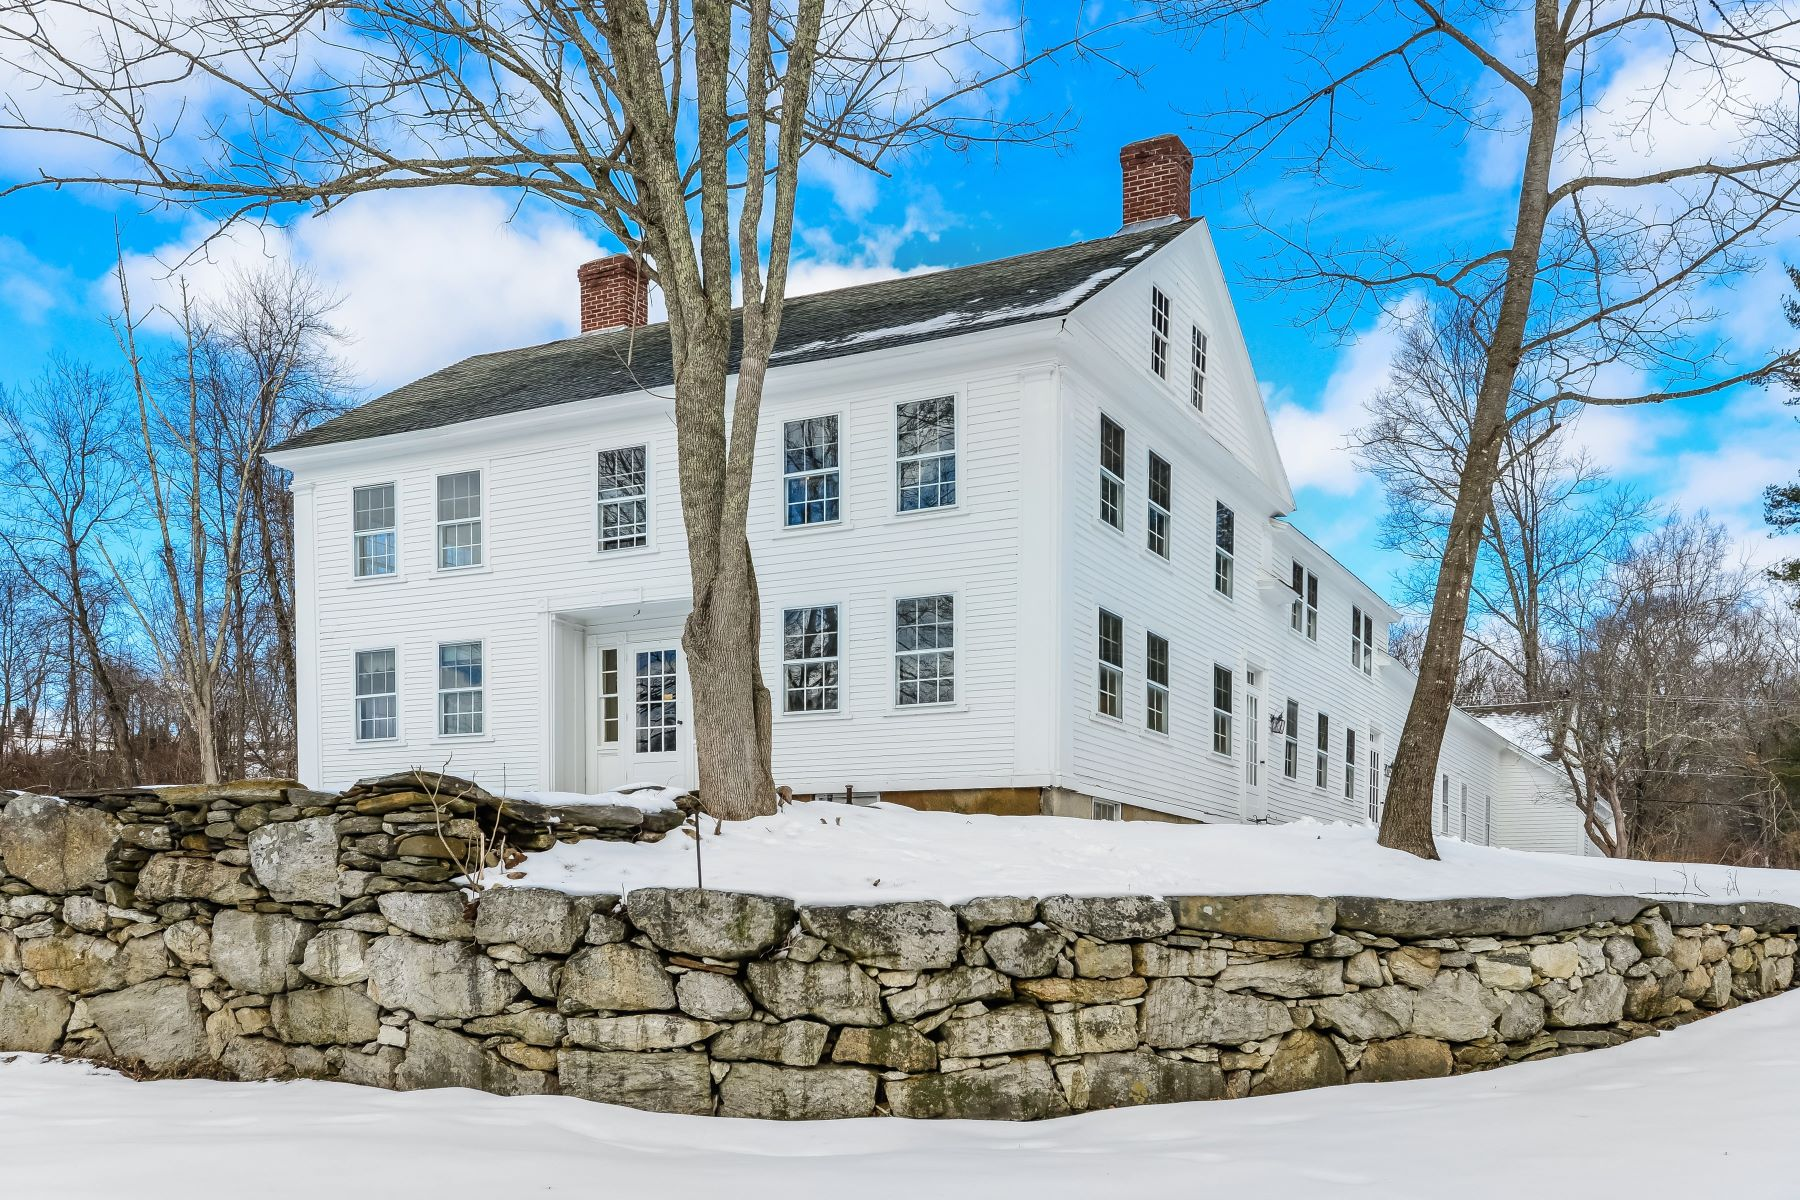 single family homes voor Verkoop op Stoneledge 378 Route 171, Woodstock, Connecticut 06281 Verenigde Staten